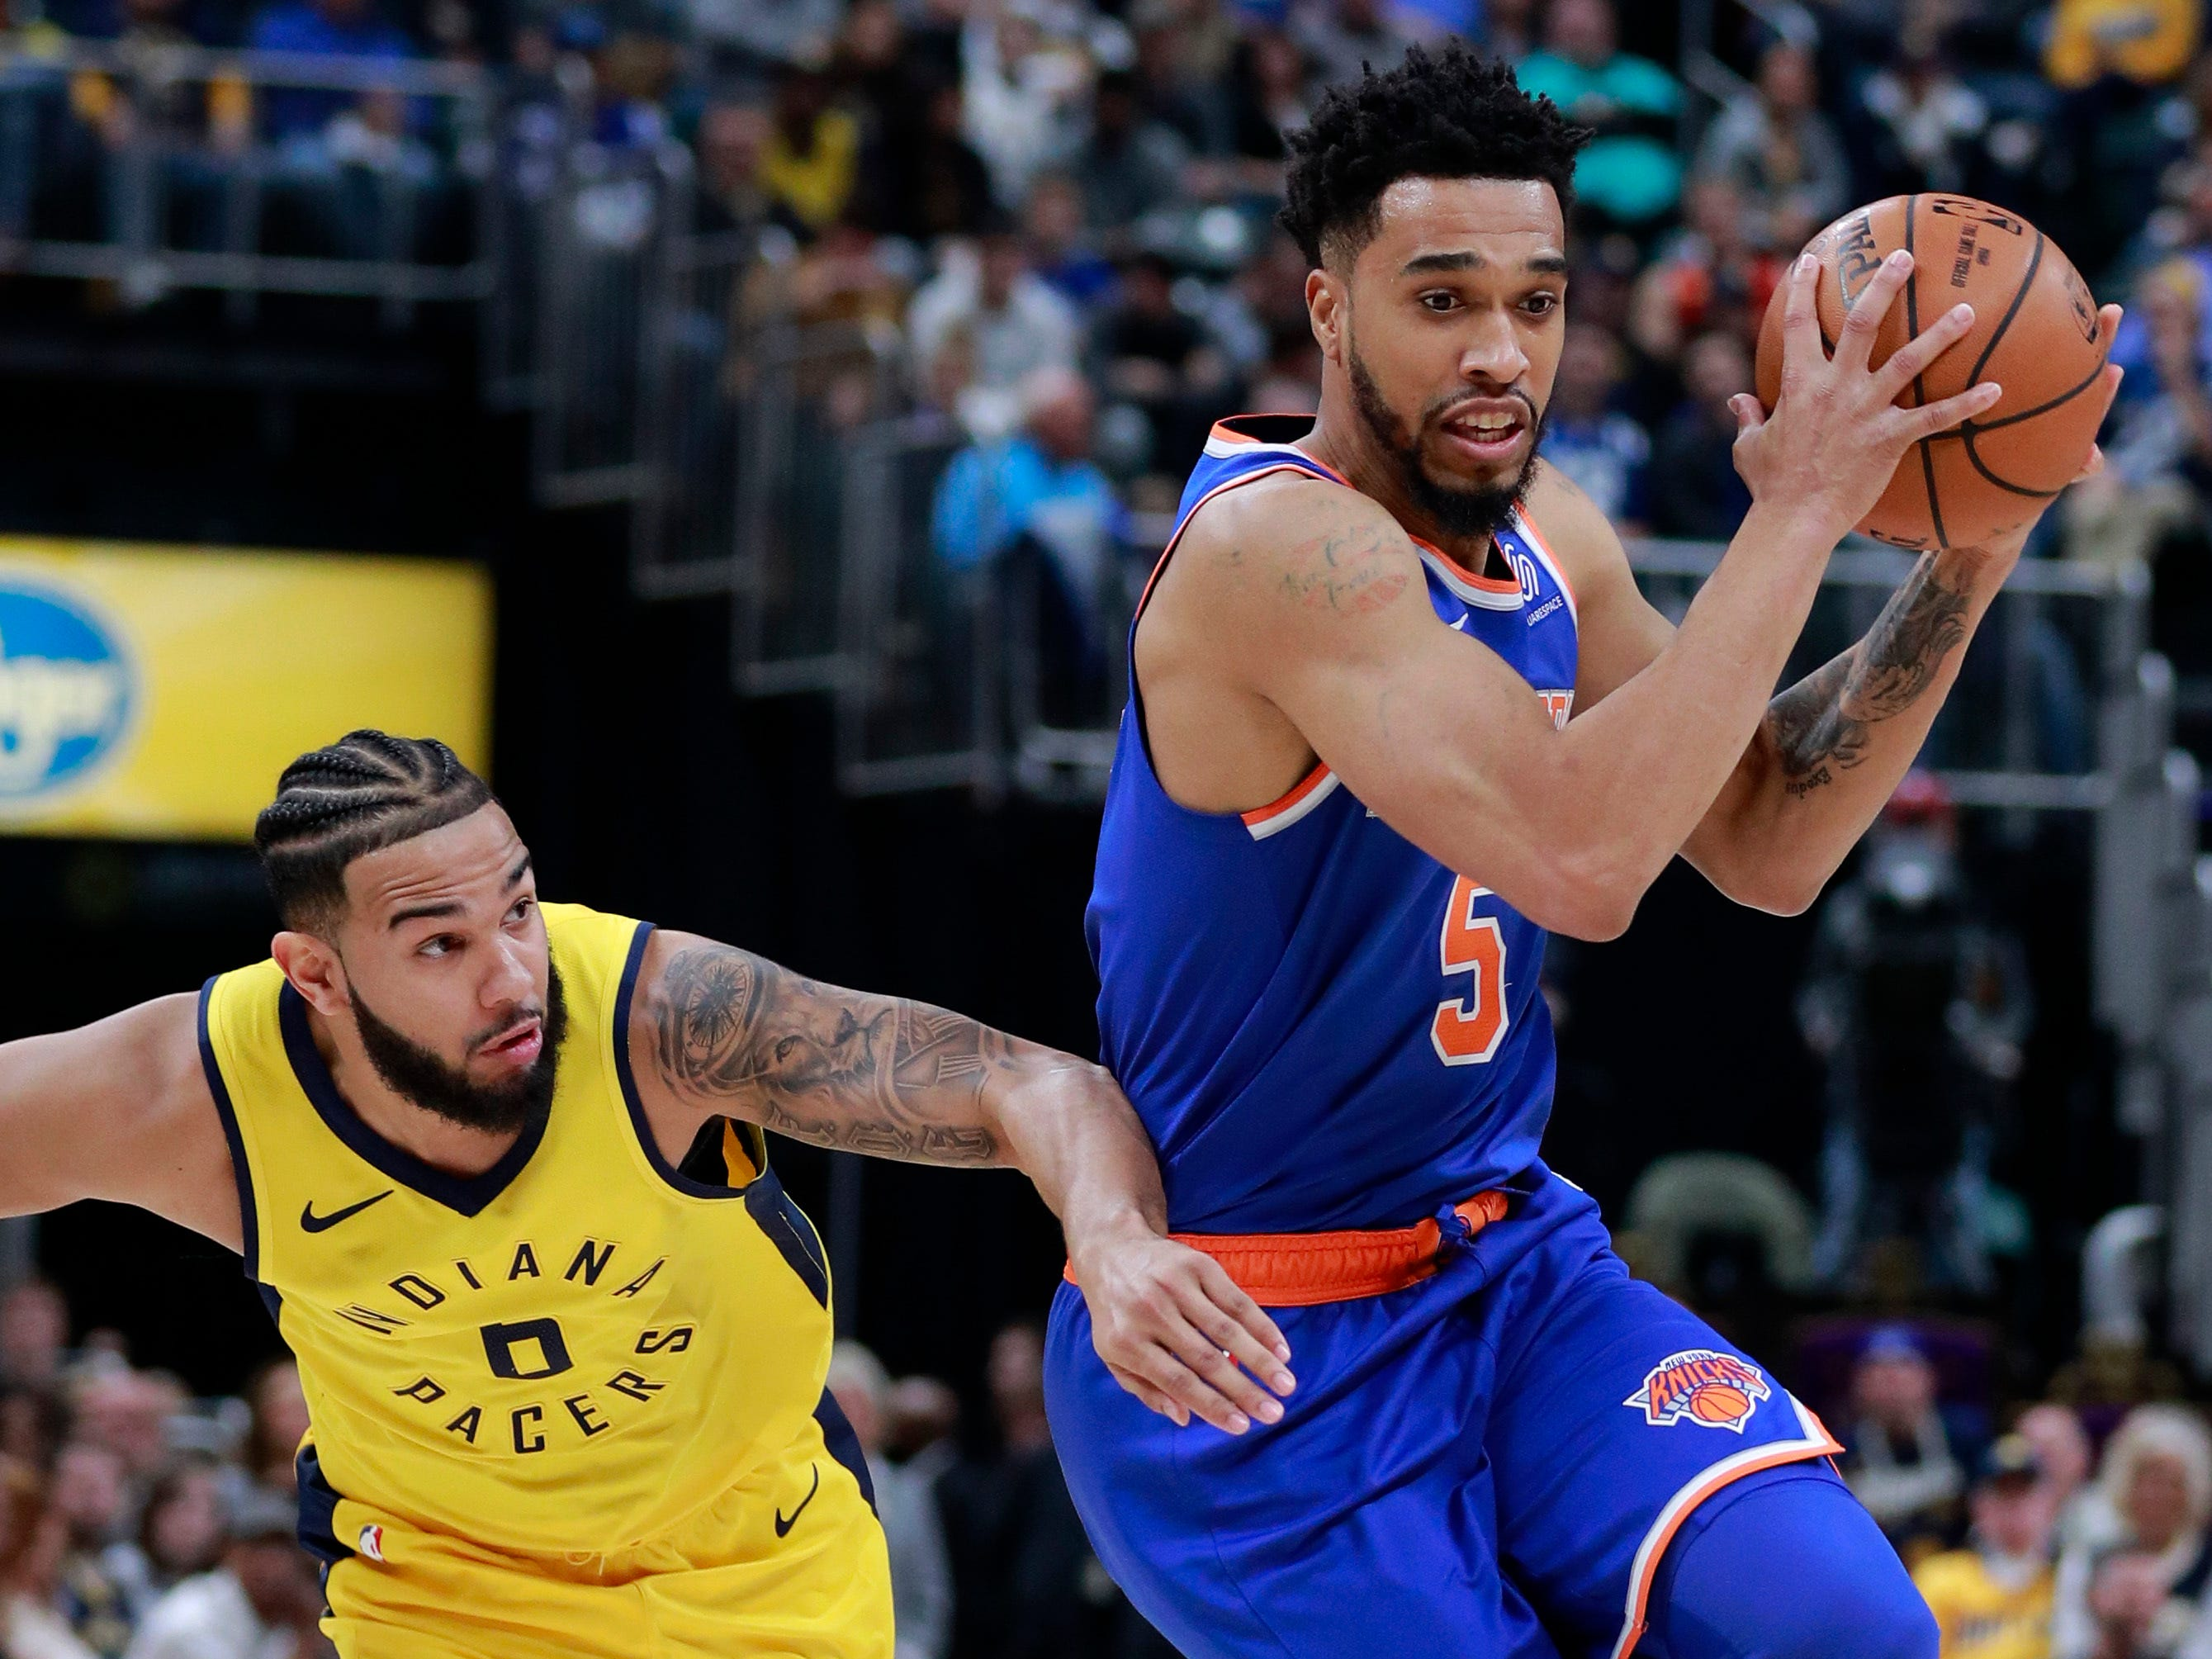 New York Knicks guard Courtney Lee, right controls the basketball defended by Indiana Pacers guard Cory Joseph during the first half of an NBA basketball game, Sunday, Dec. 16, 2018, in Indianapolis. (AP Photo/R Brent Smith)